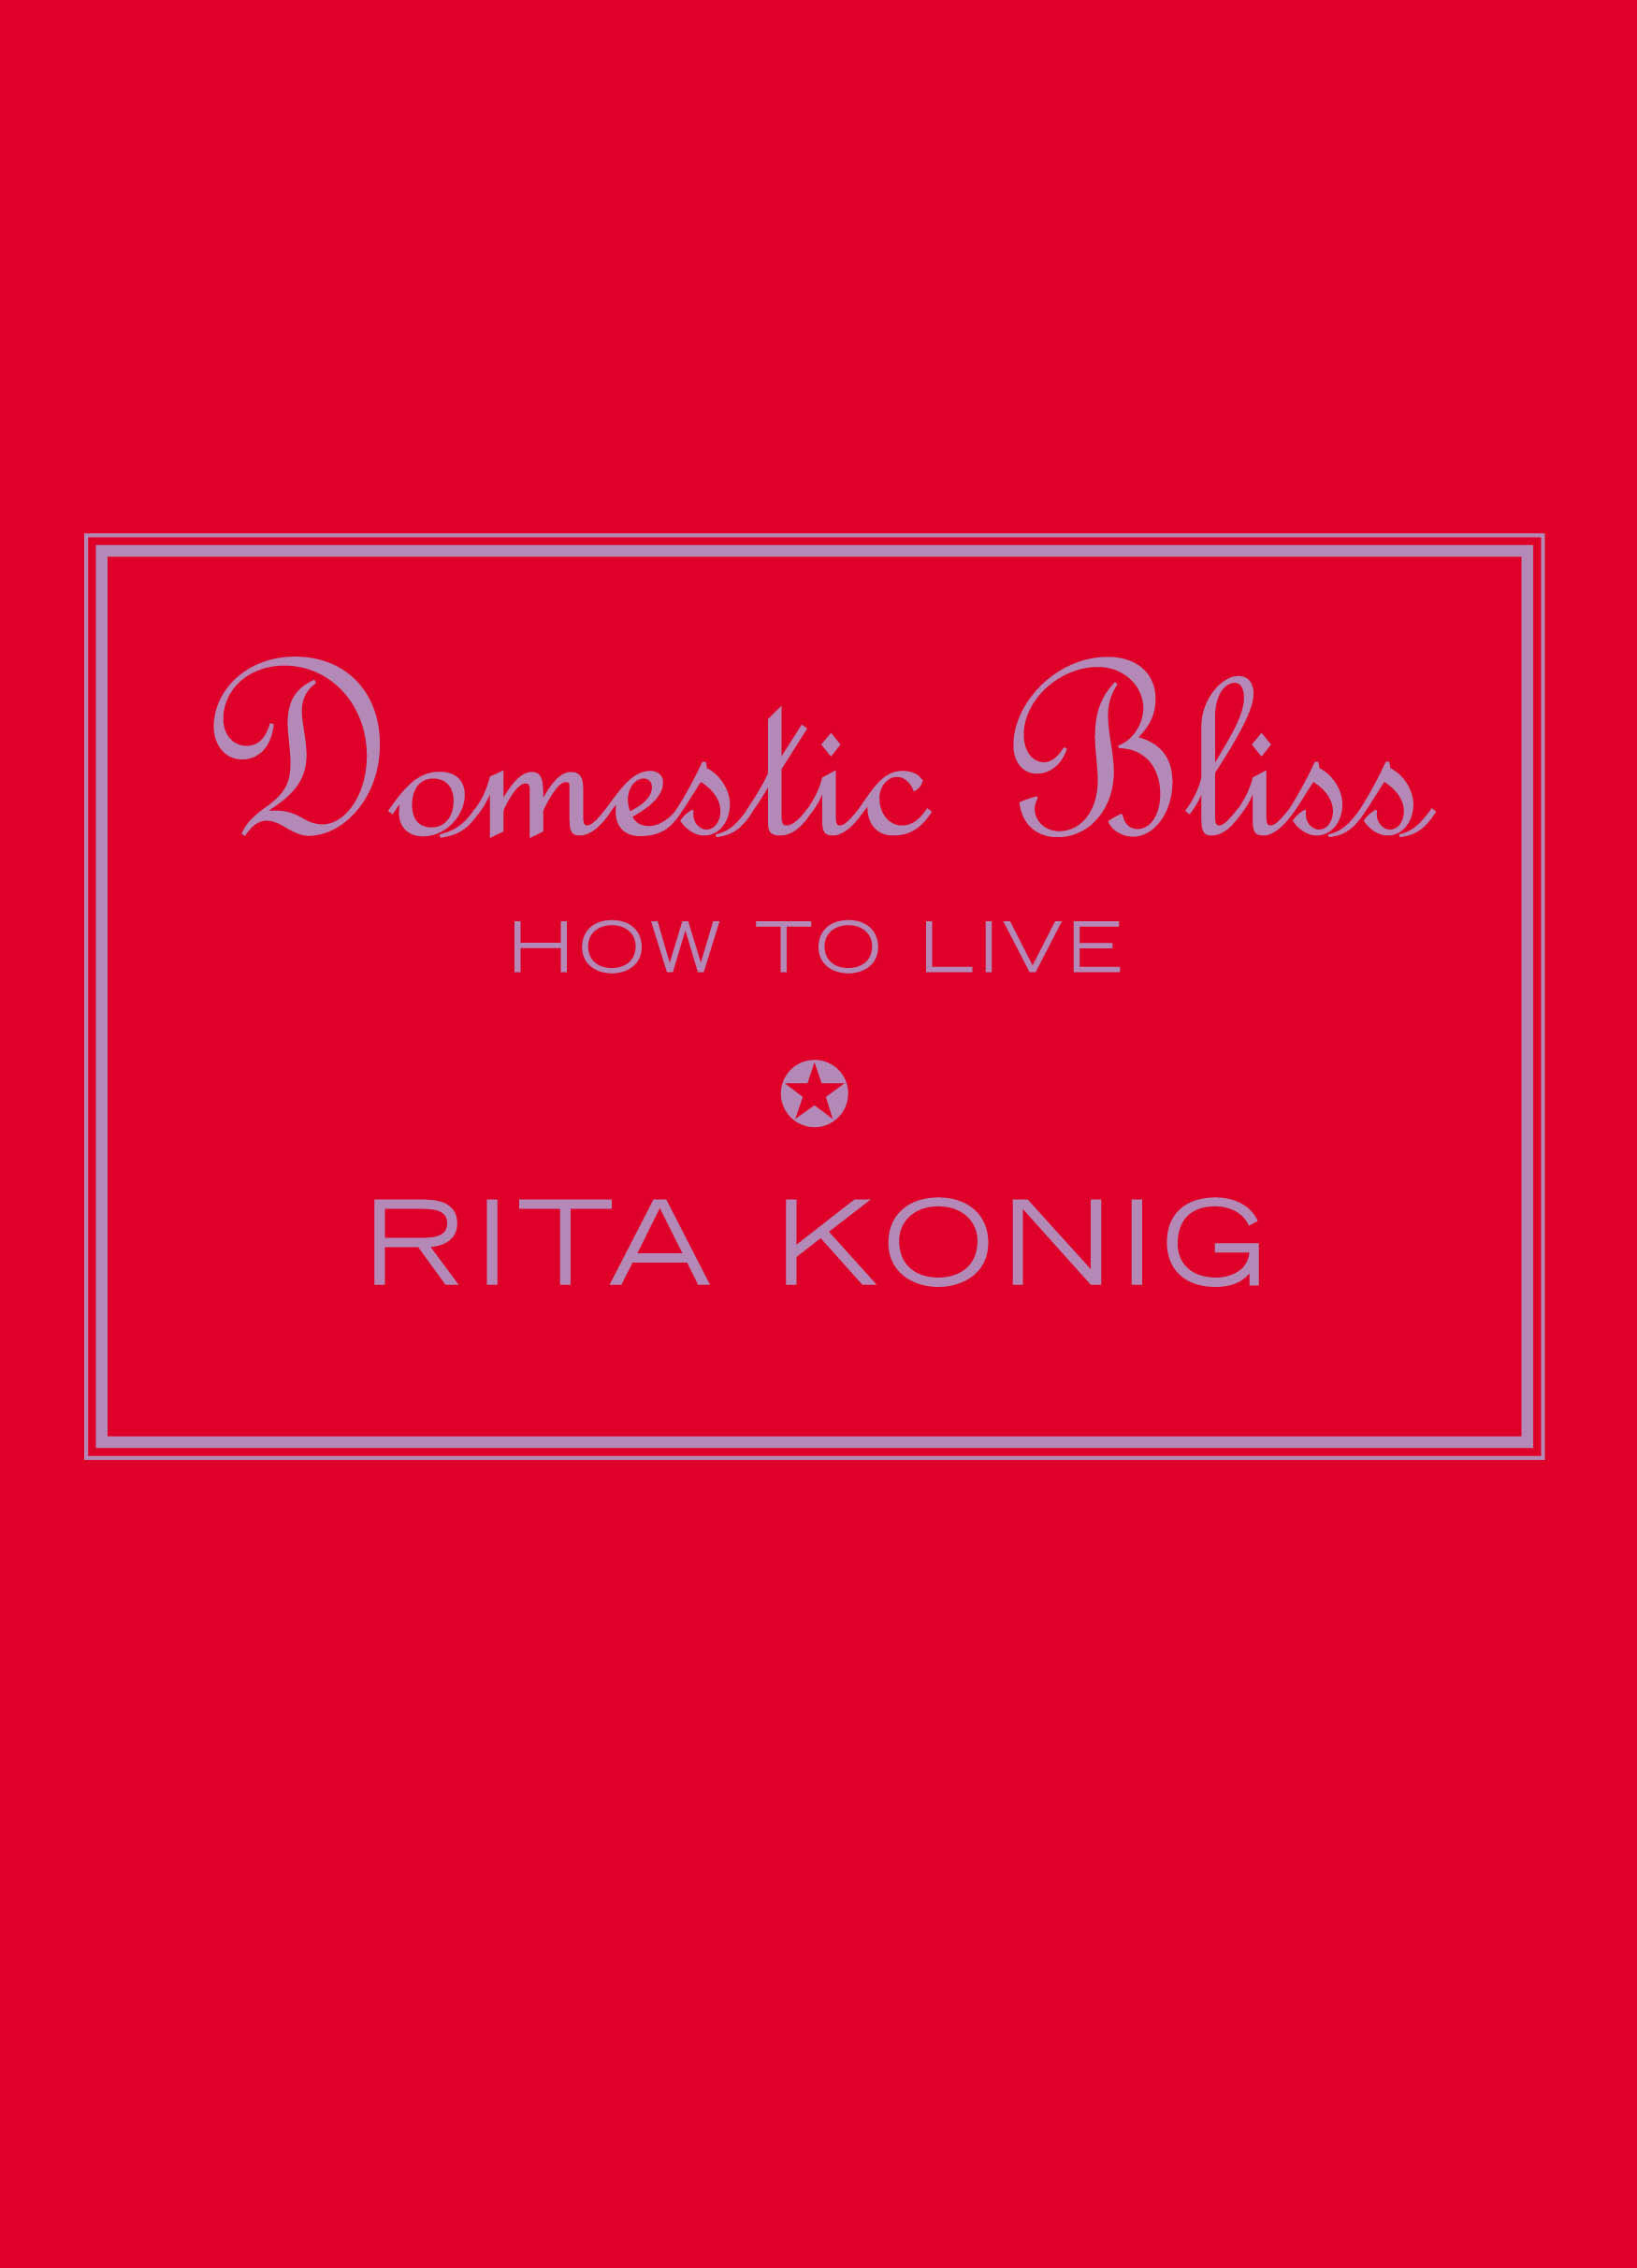 Domestic Bliss by Rita Konig